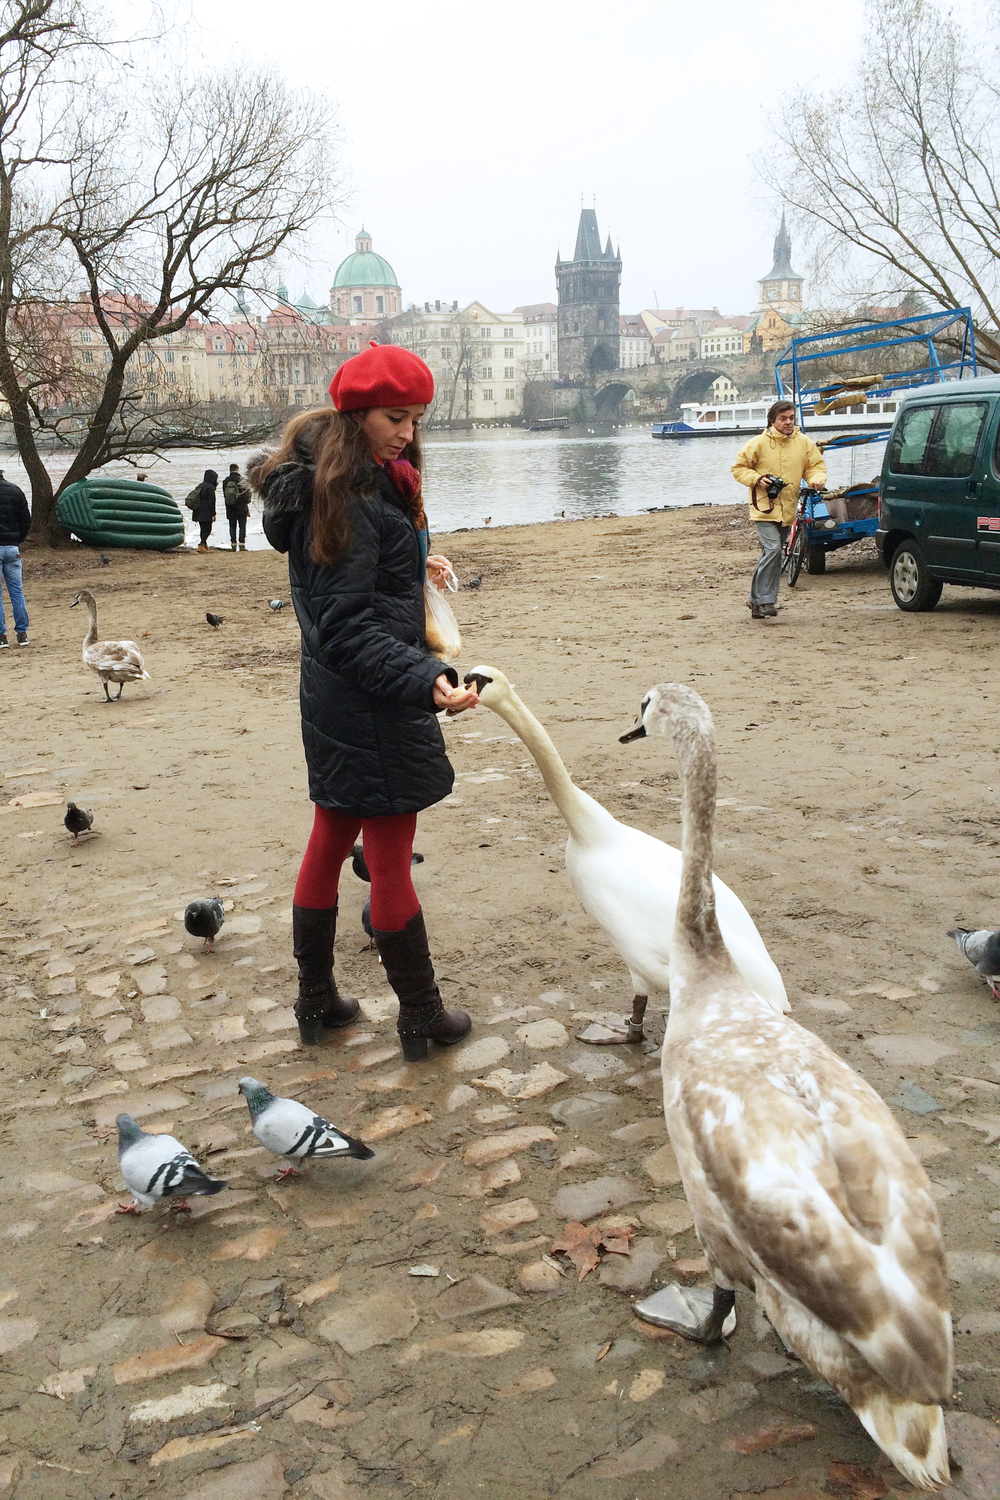 We stopped by the river to watch these swans — they just wandered up to people with no fear.